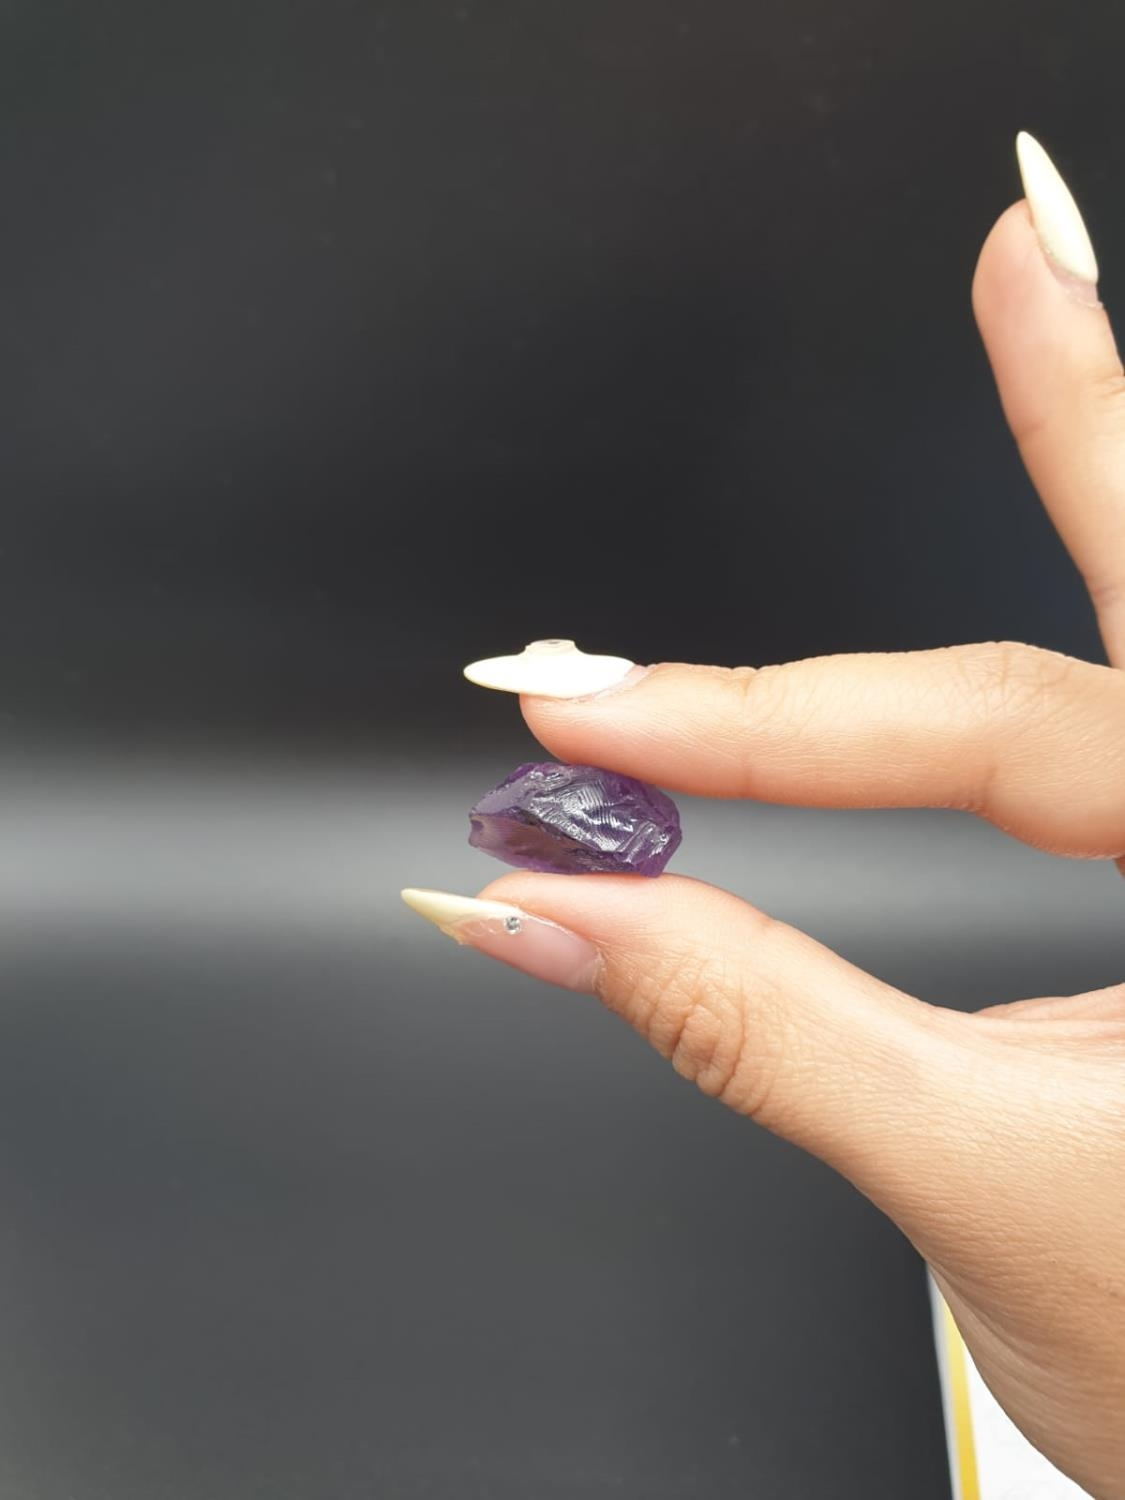 20.21 Ct Loose Natural Amethyst. Rough shape. IDT certified - Image 4 of 5